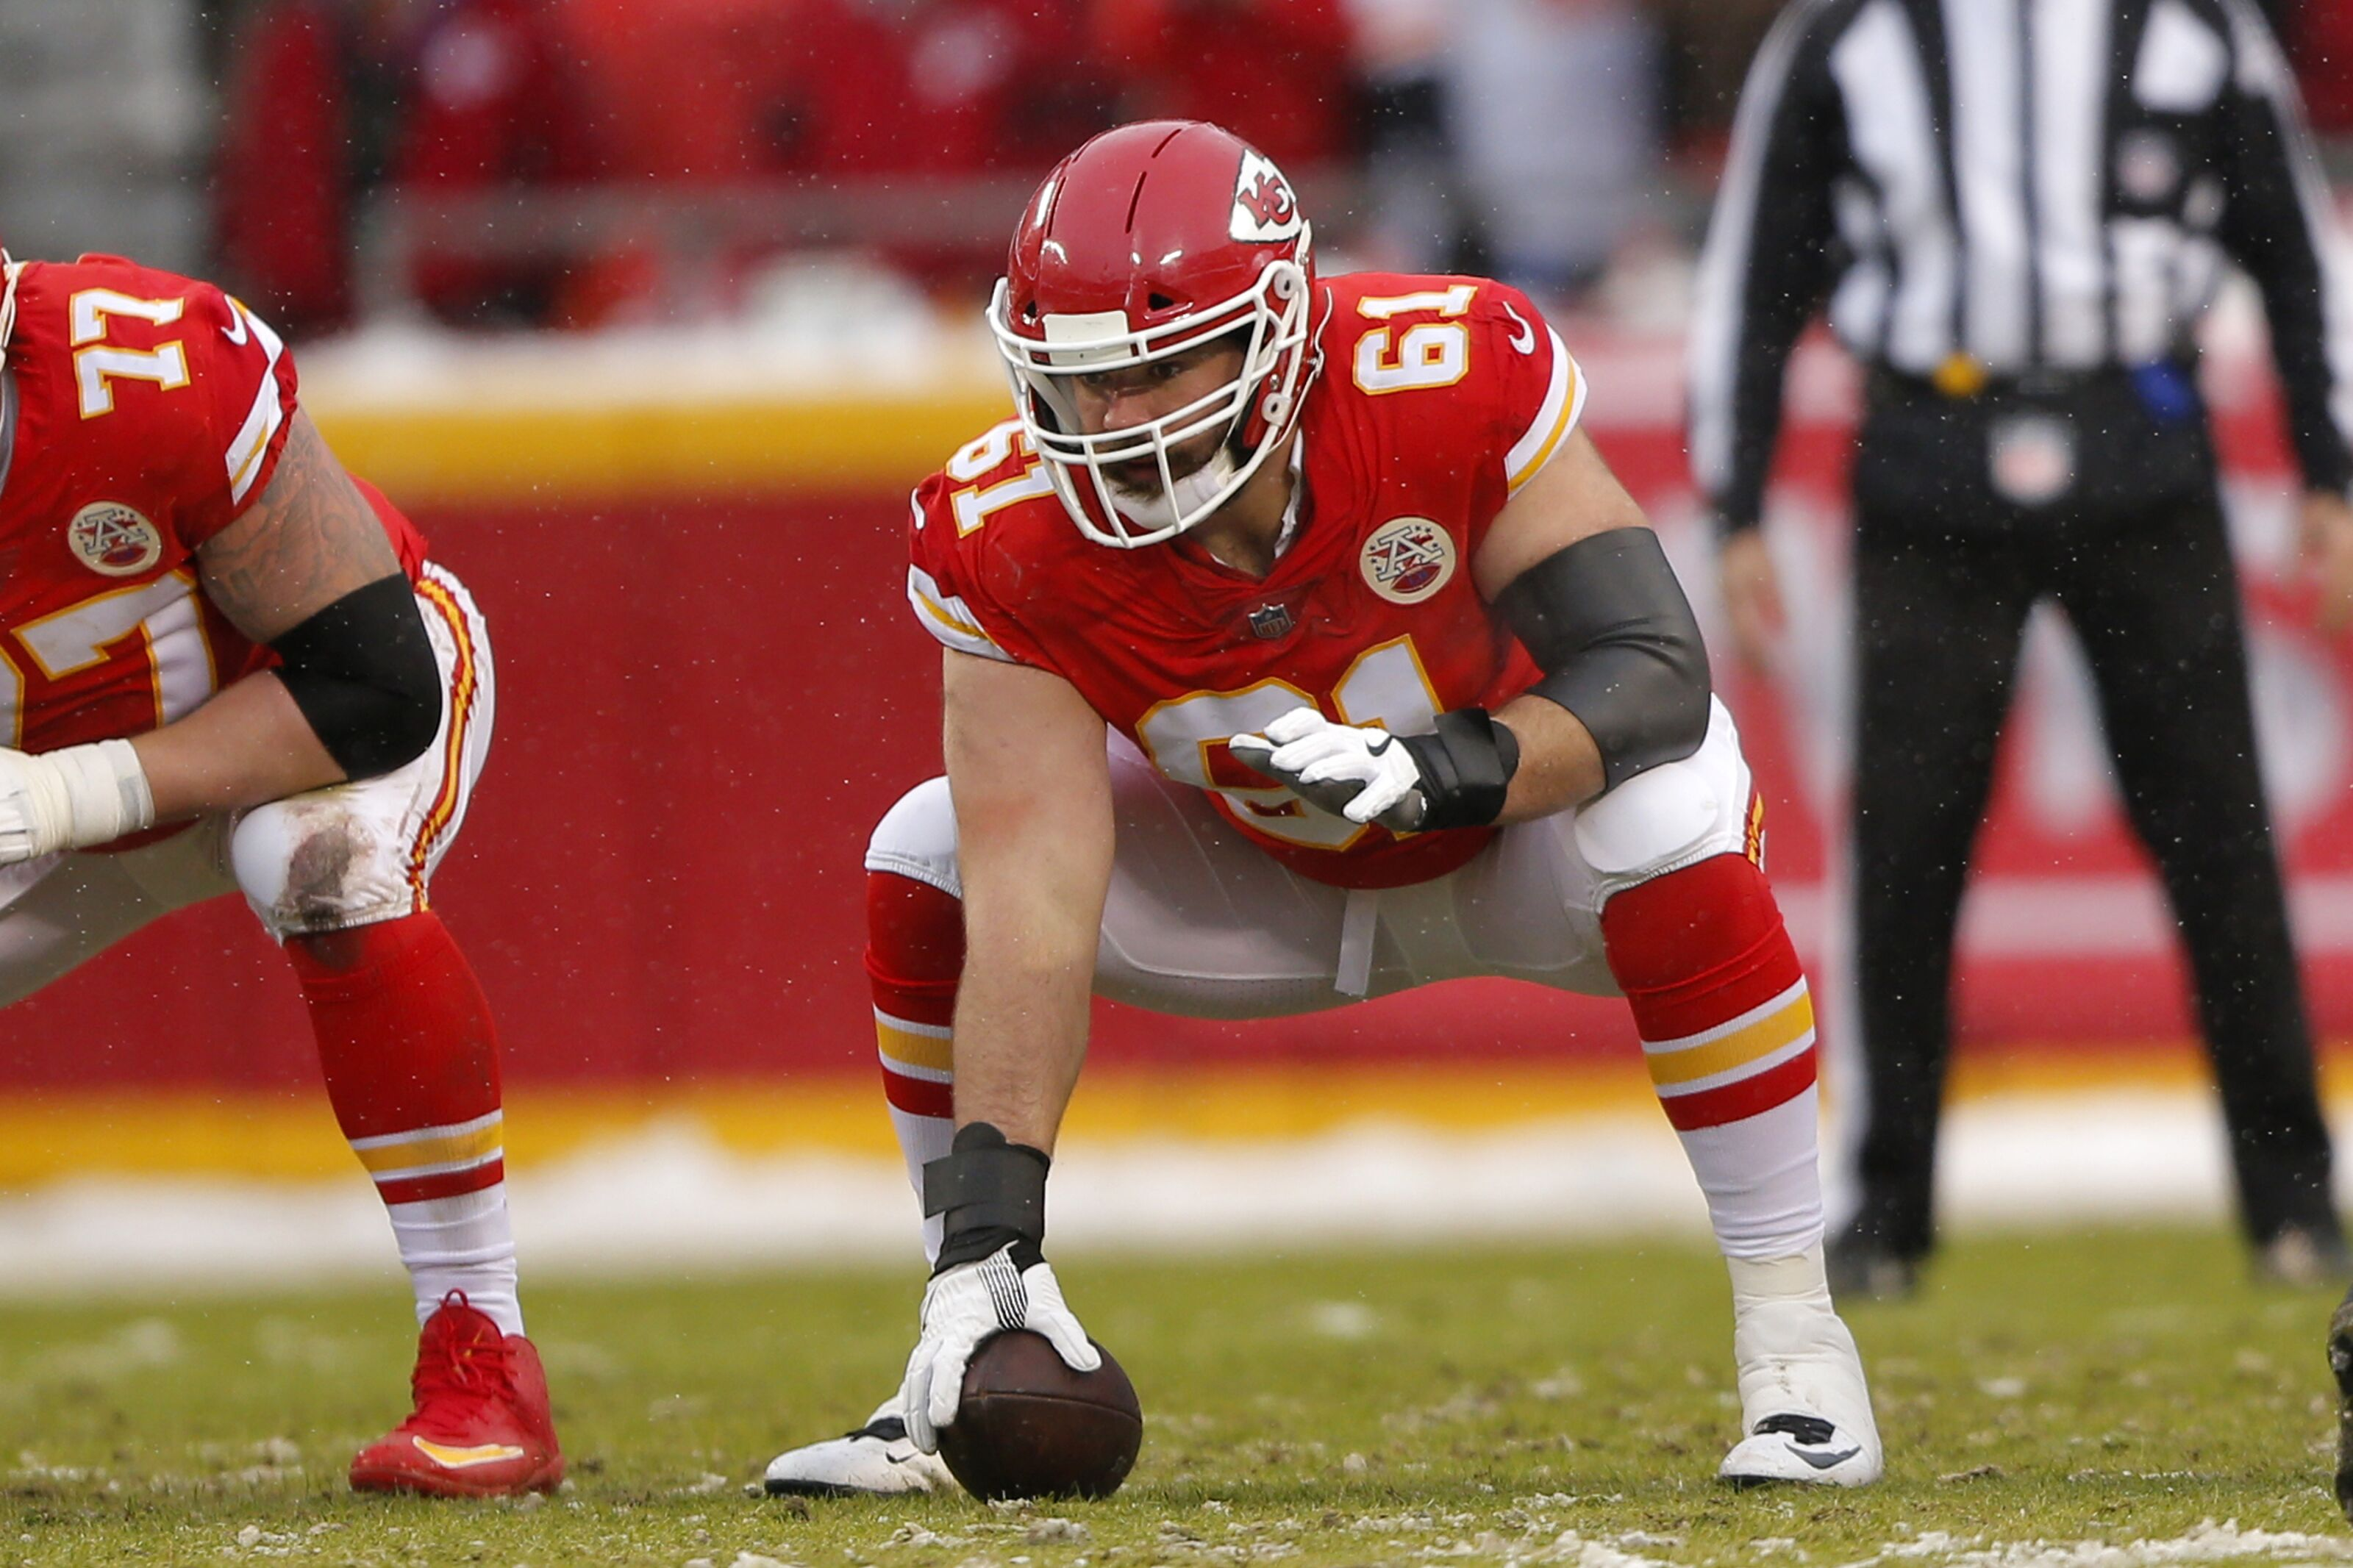 KANSAS CITY, MO - JANUARY 12: Kansas City Chiefs offensive lineman Mitch Morse (61) during the AFC Divisional Round game between the Indianapolis Colts and the Kansas City Chiefs on January 12, 2019, at Arrowhead Stadium in Kansas City MO. (Photo by Jeffrey Brown/Icon Sportswire via Getty Images)